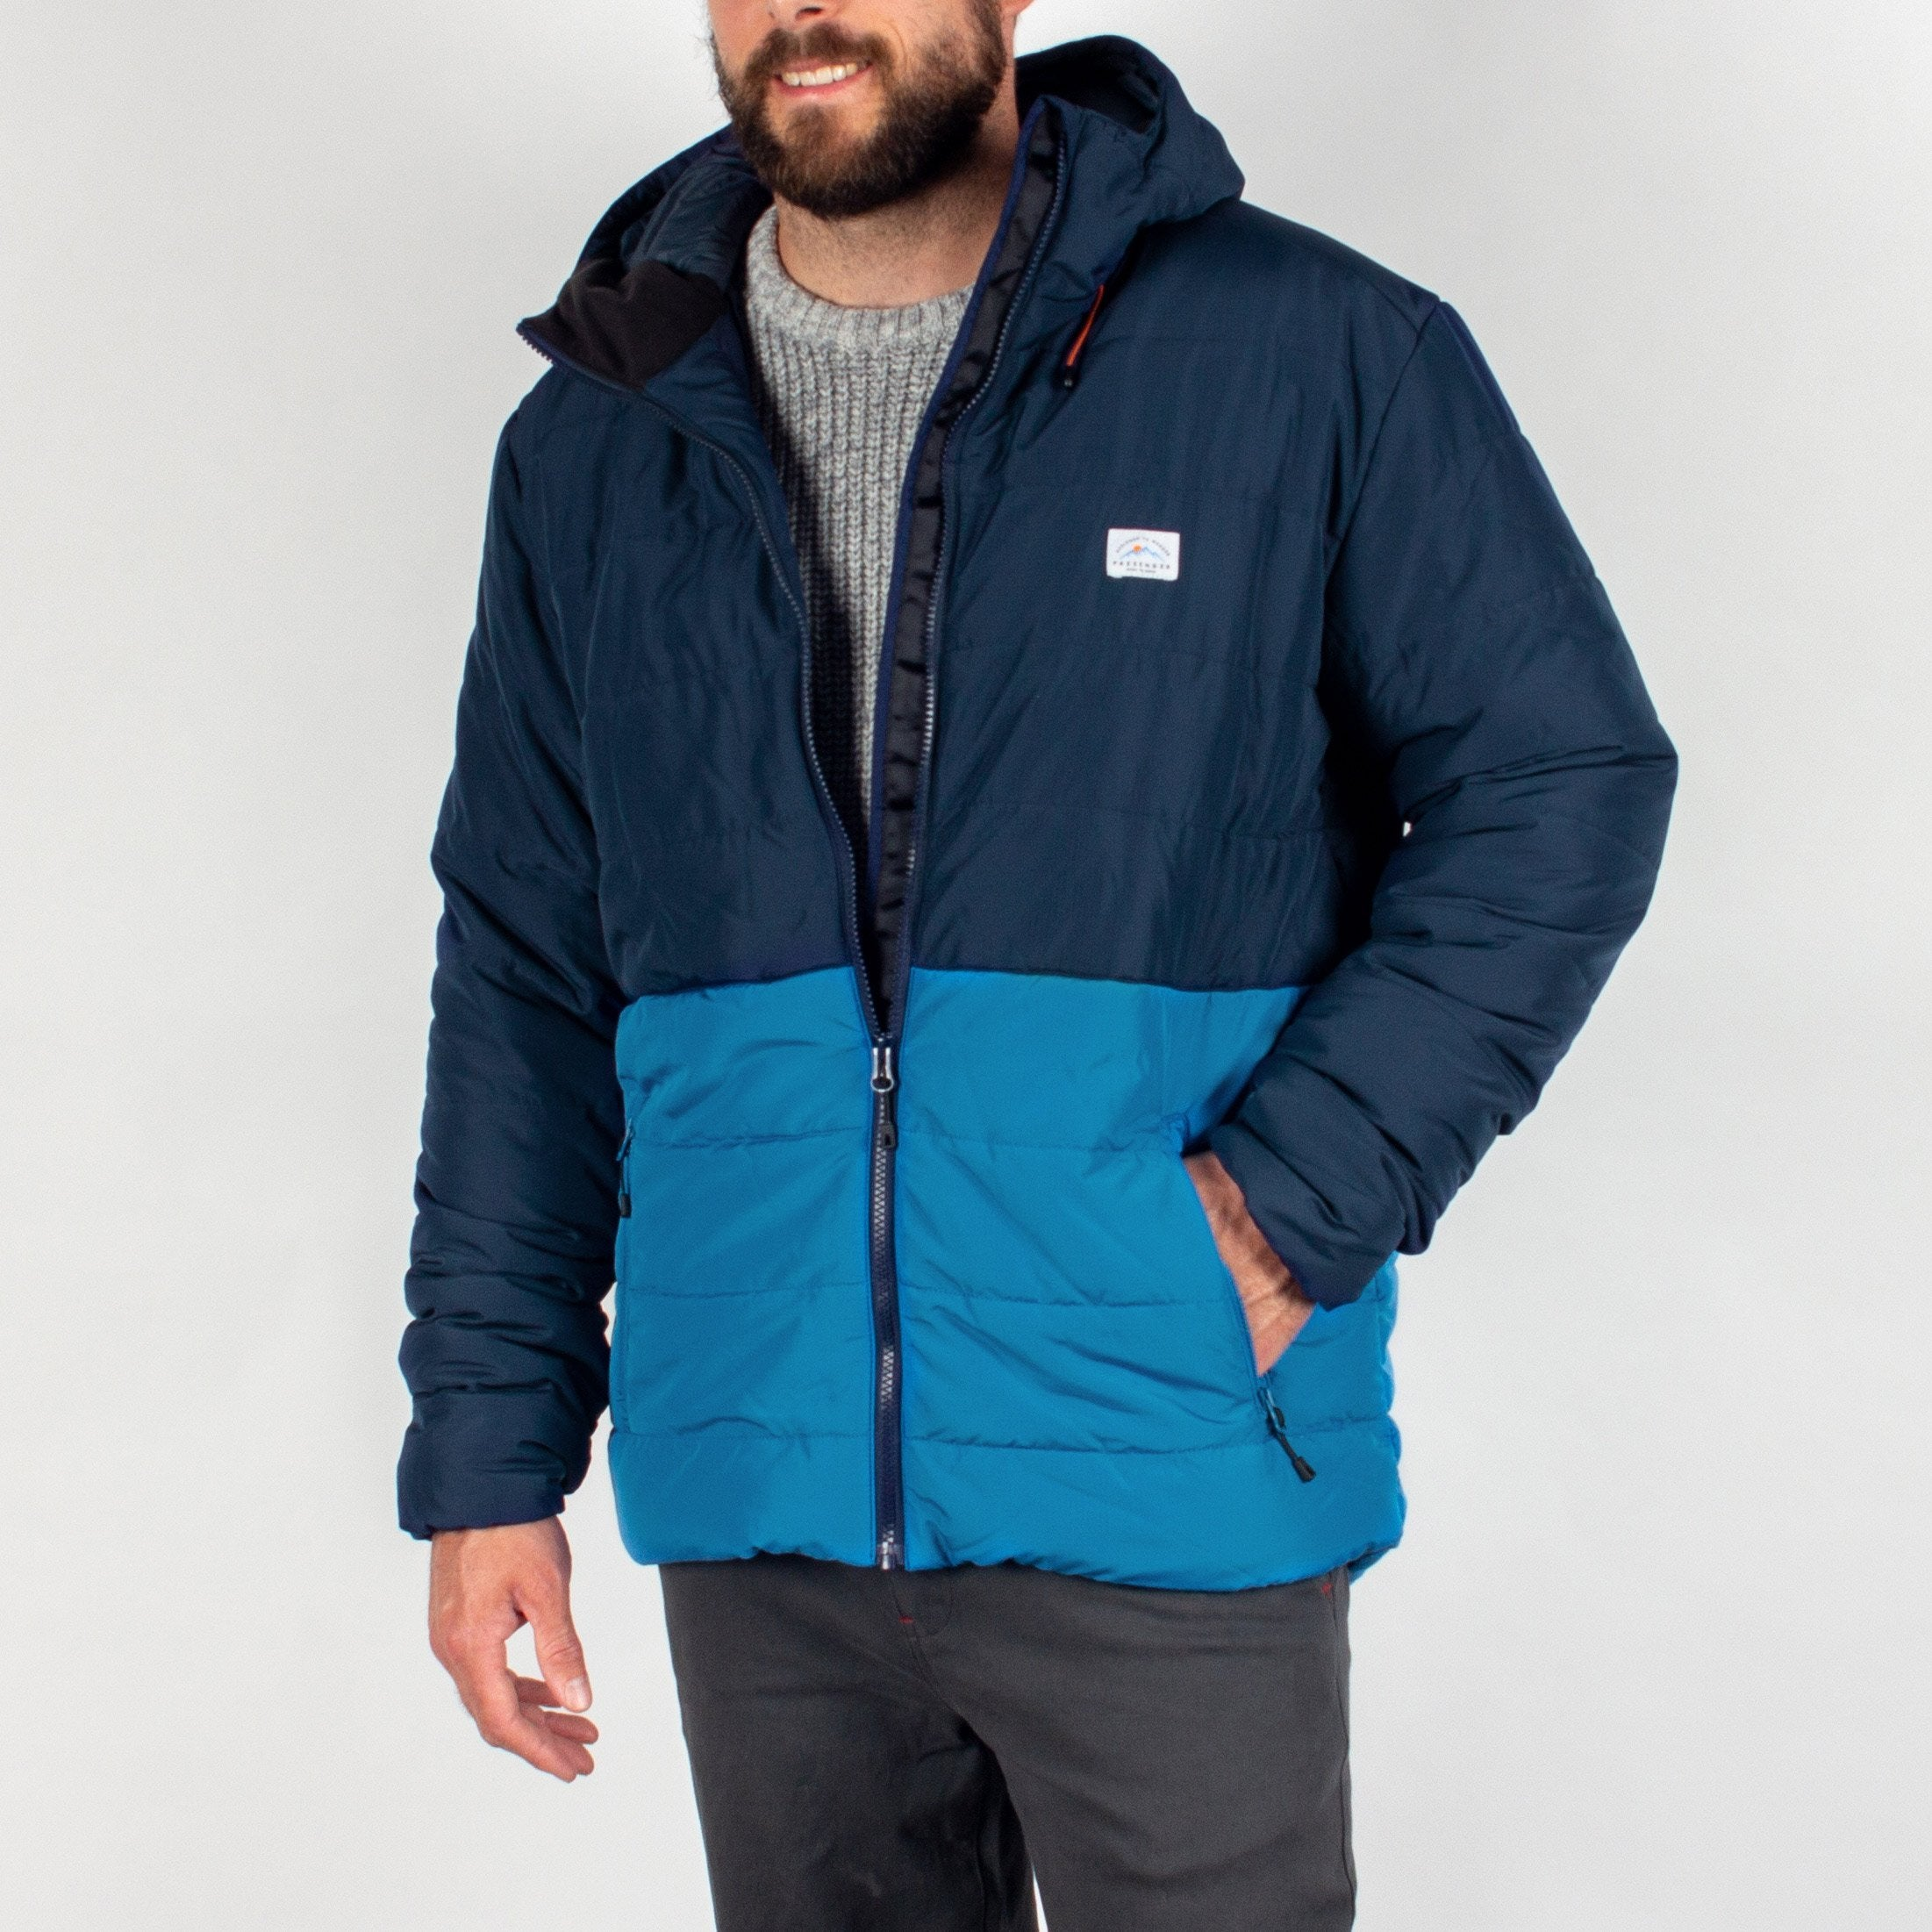 Patrol Insulated Jacket - Navy/Deep Water Blue image 2